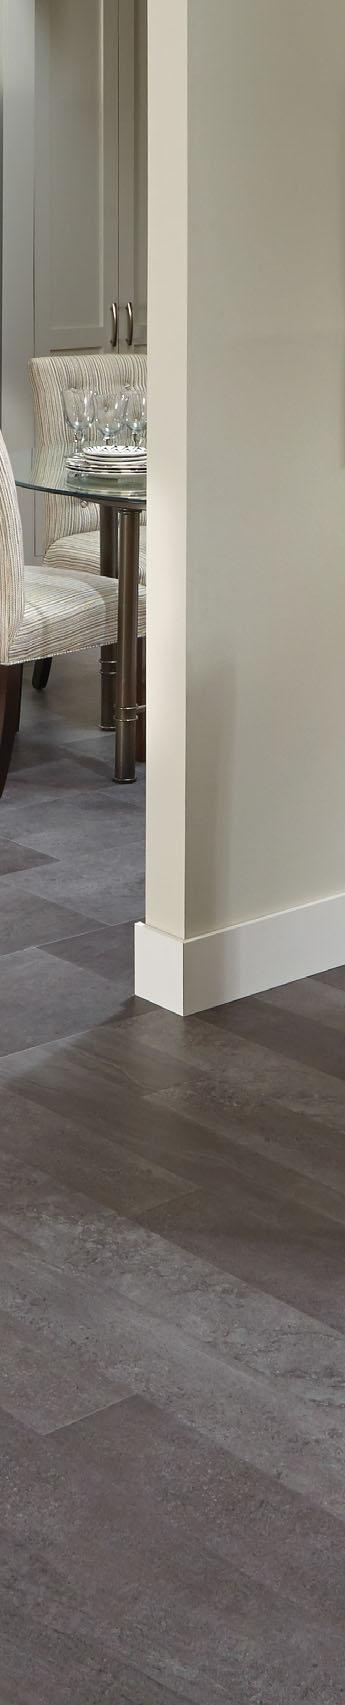 Mannington Hardware AT402 Adura Glue Down Collection Meridian Luxury Vinyl Tile Flooring Fossil//AT402